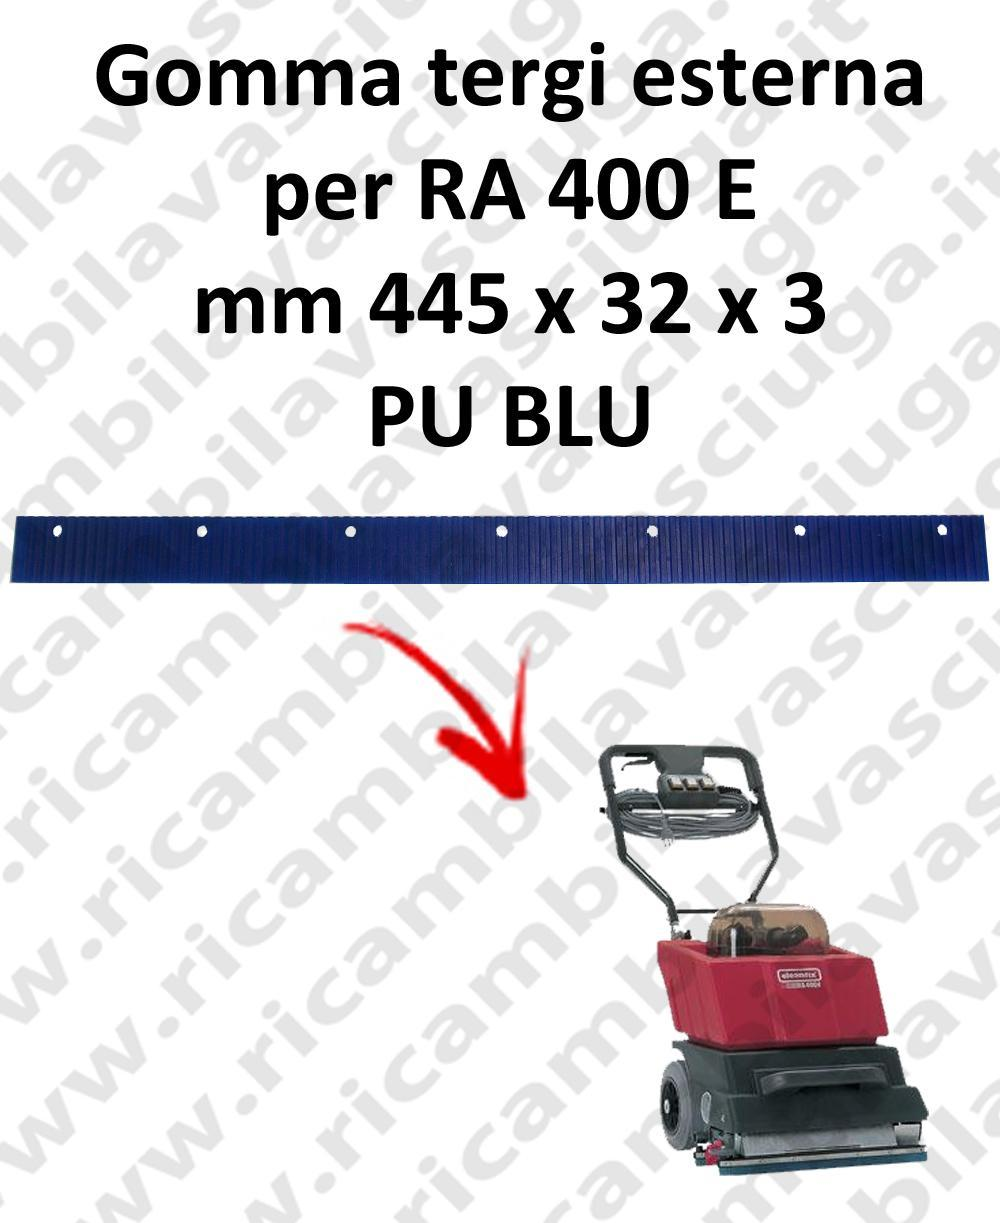 RA 400 E Outer Squeegee rubber for CLEANFIX accessories, reaplacement, spare parts,o scrubber dryer squeegee